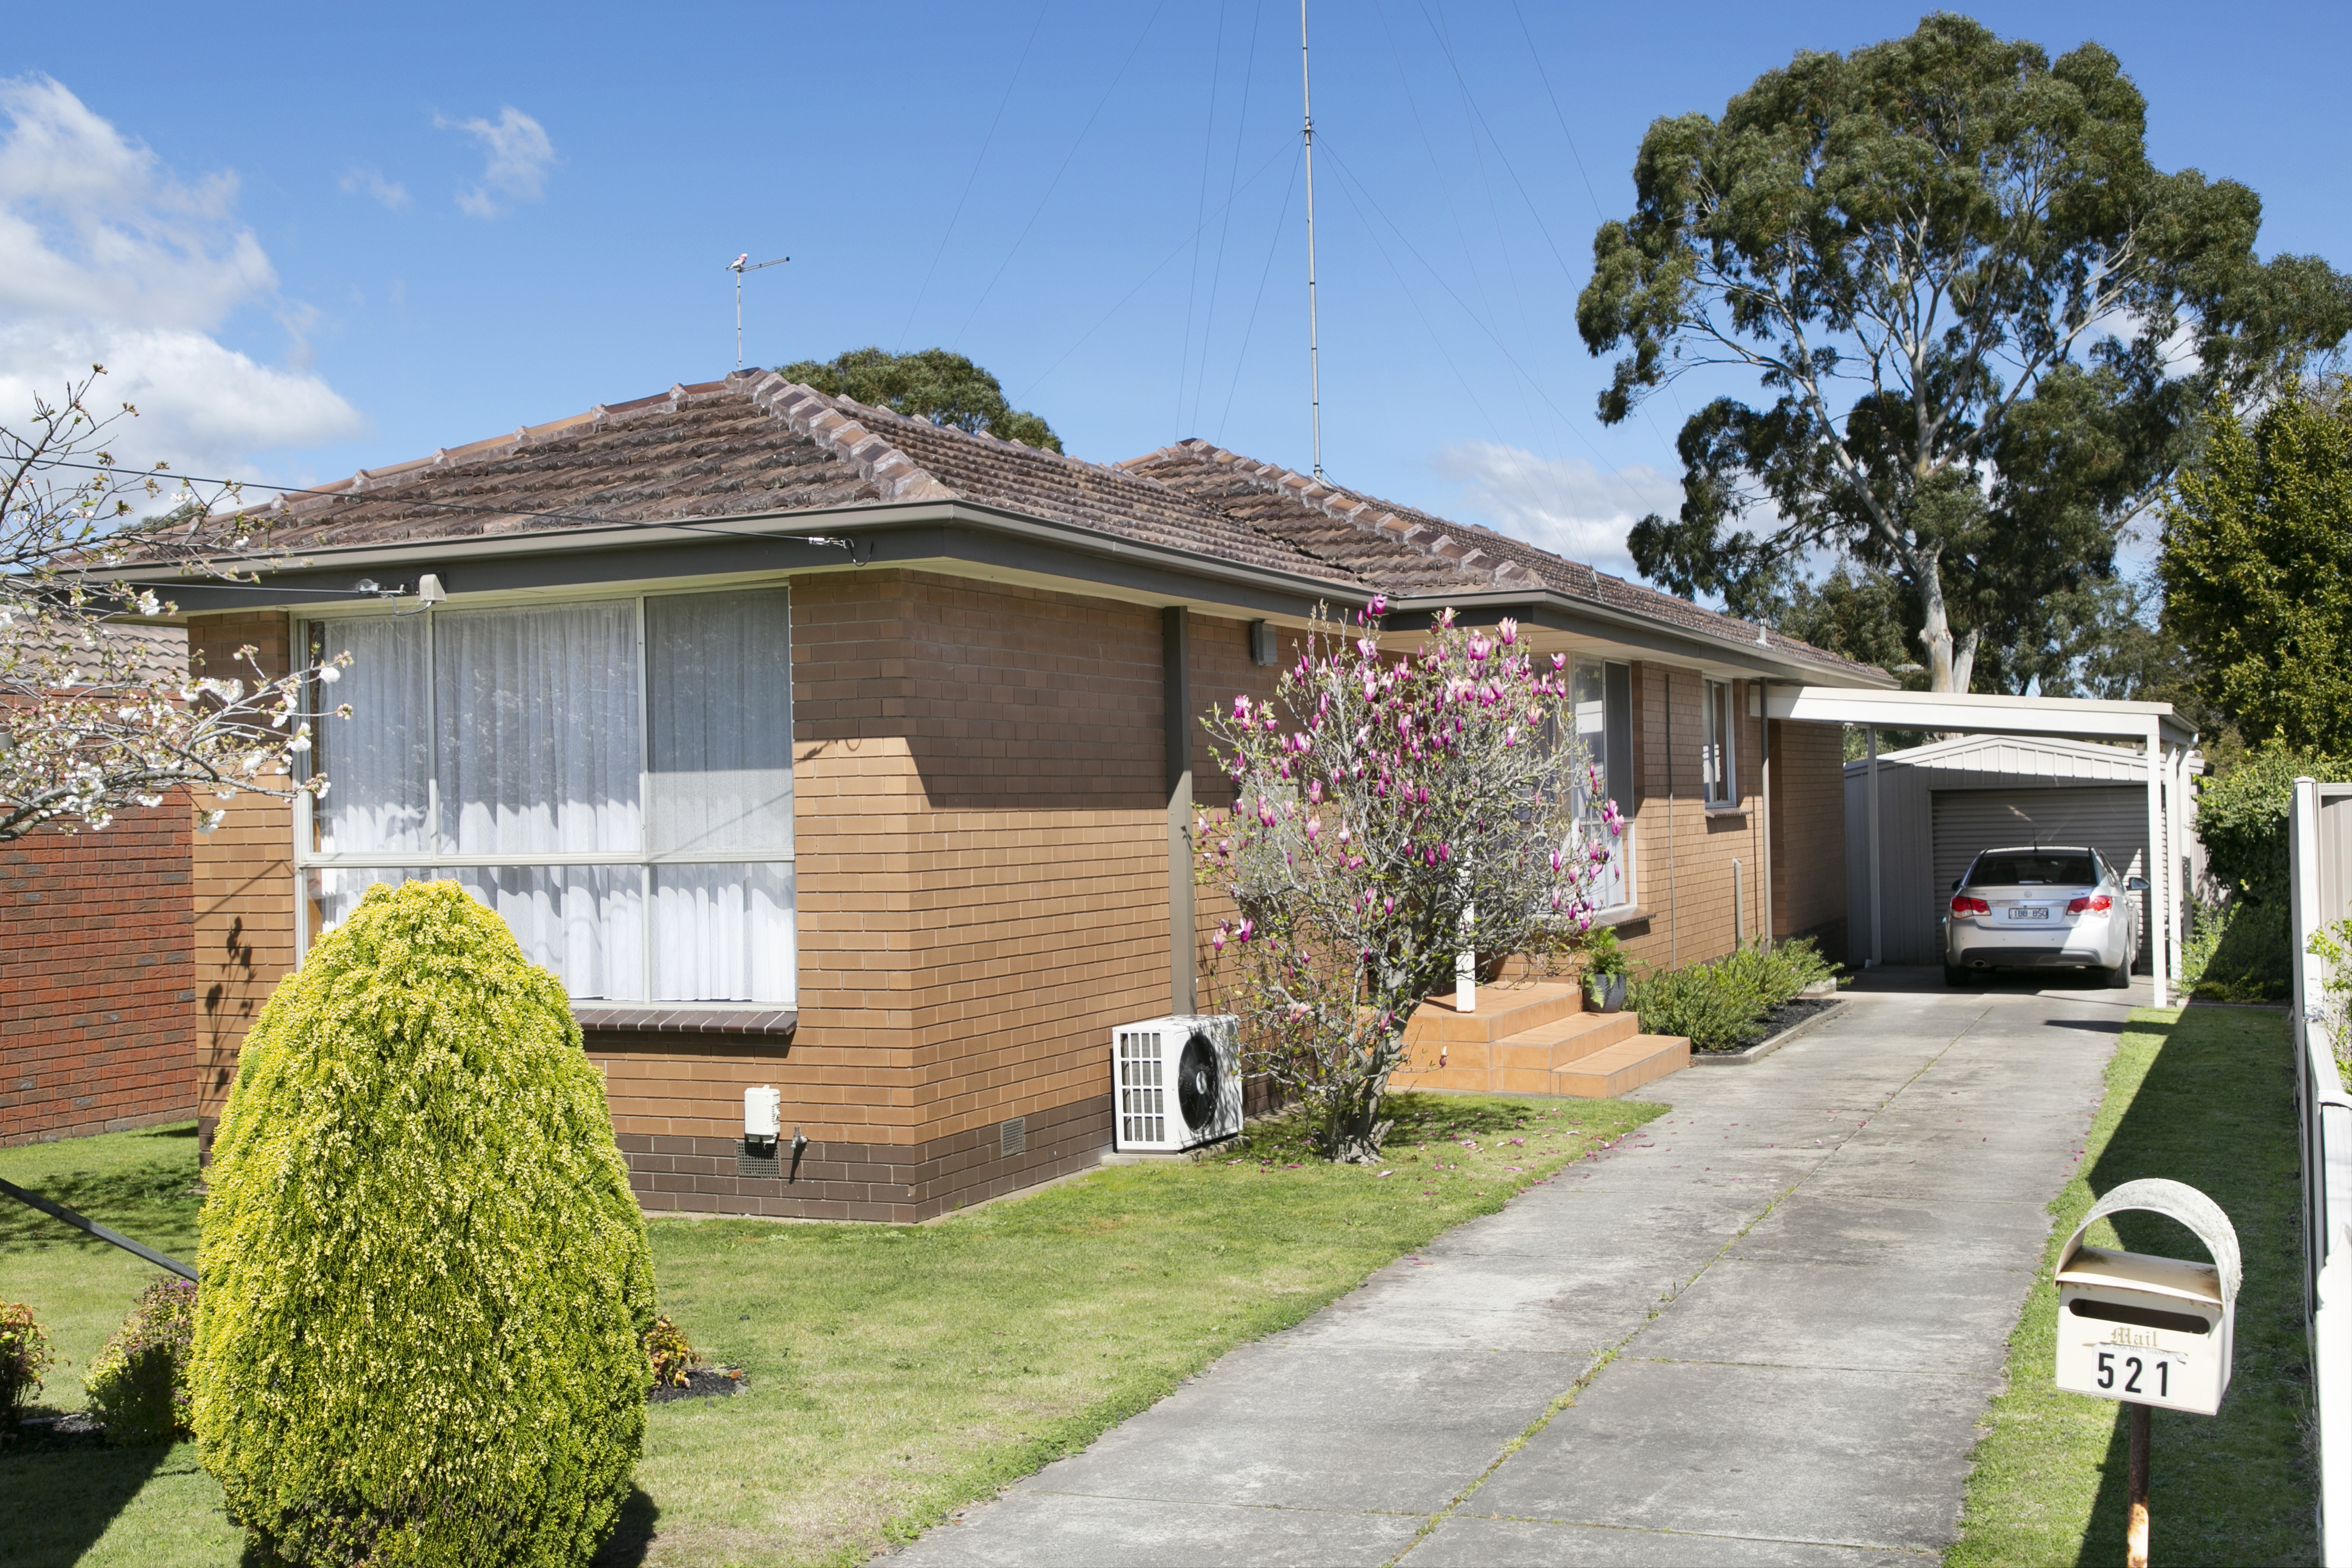 521, Howitt Street, SOLDIERS HILL, VIC 3350